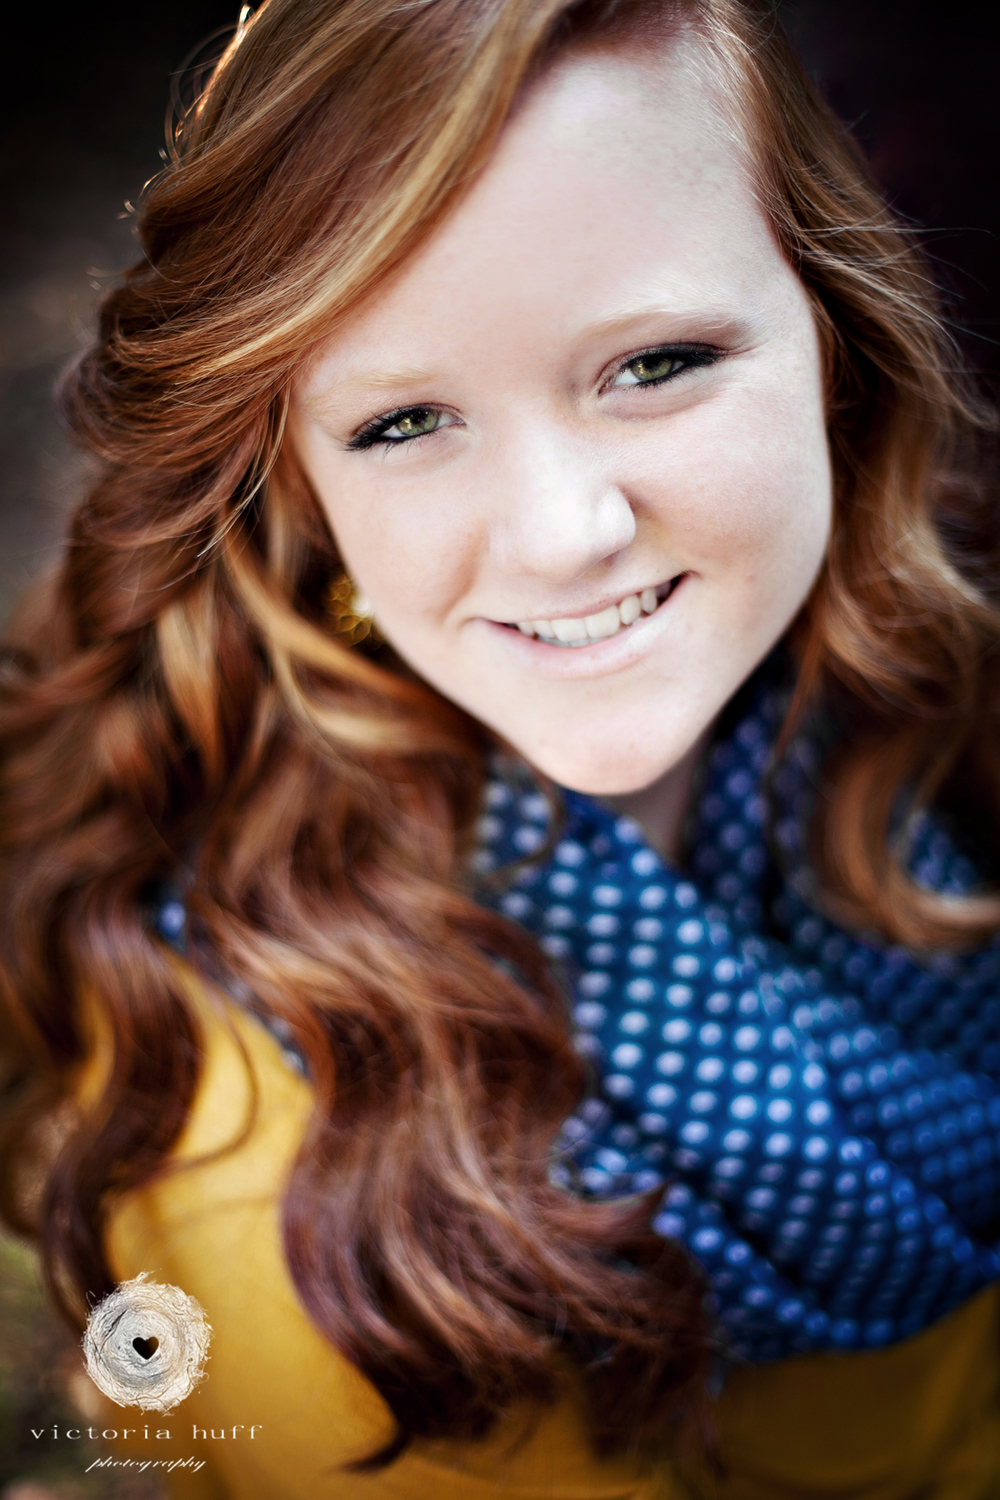 Courtney-Harkins-Senior-Portraits-Jefferson-Athens-Georgia-Red-Hair-Photography-2.jpg